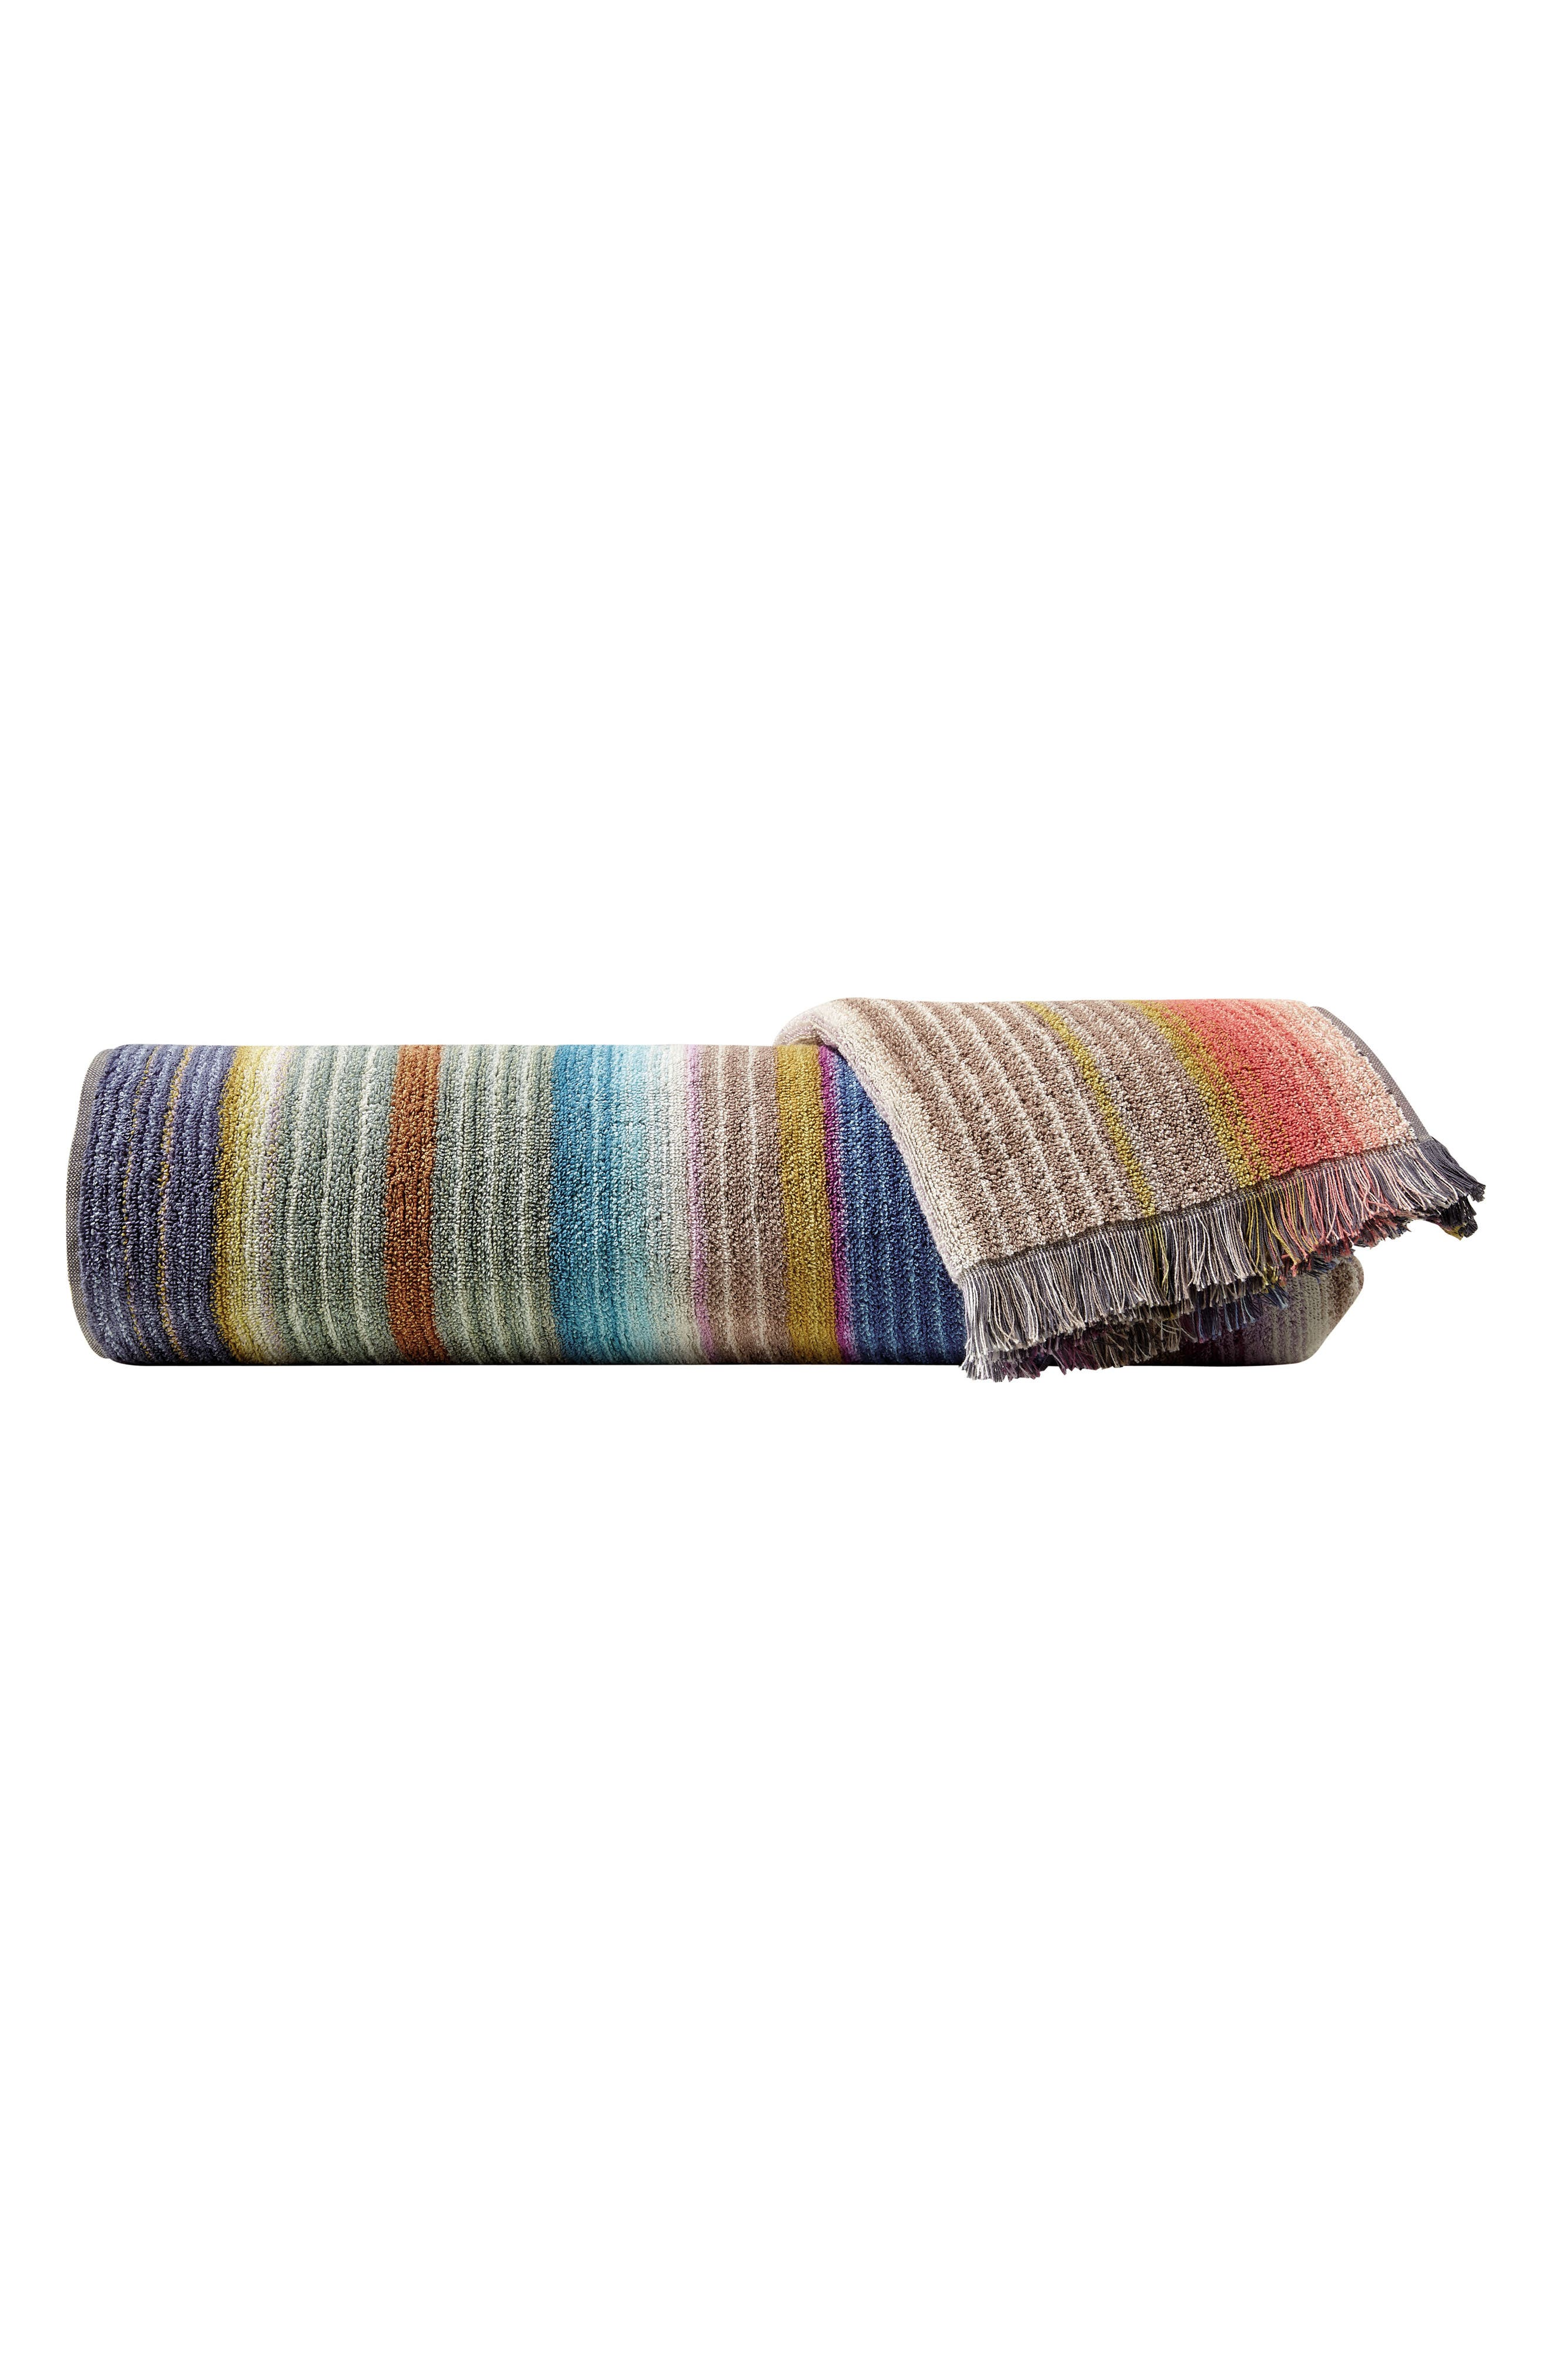 Viviette Bath Towel,                             Main thumbnail 1, color,                             Taupe Multi